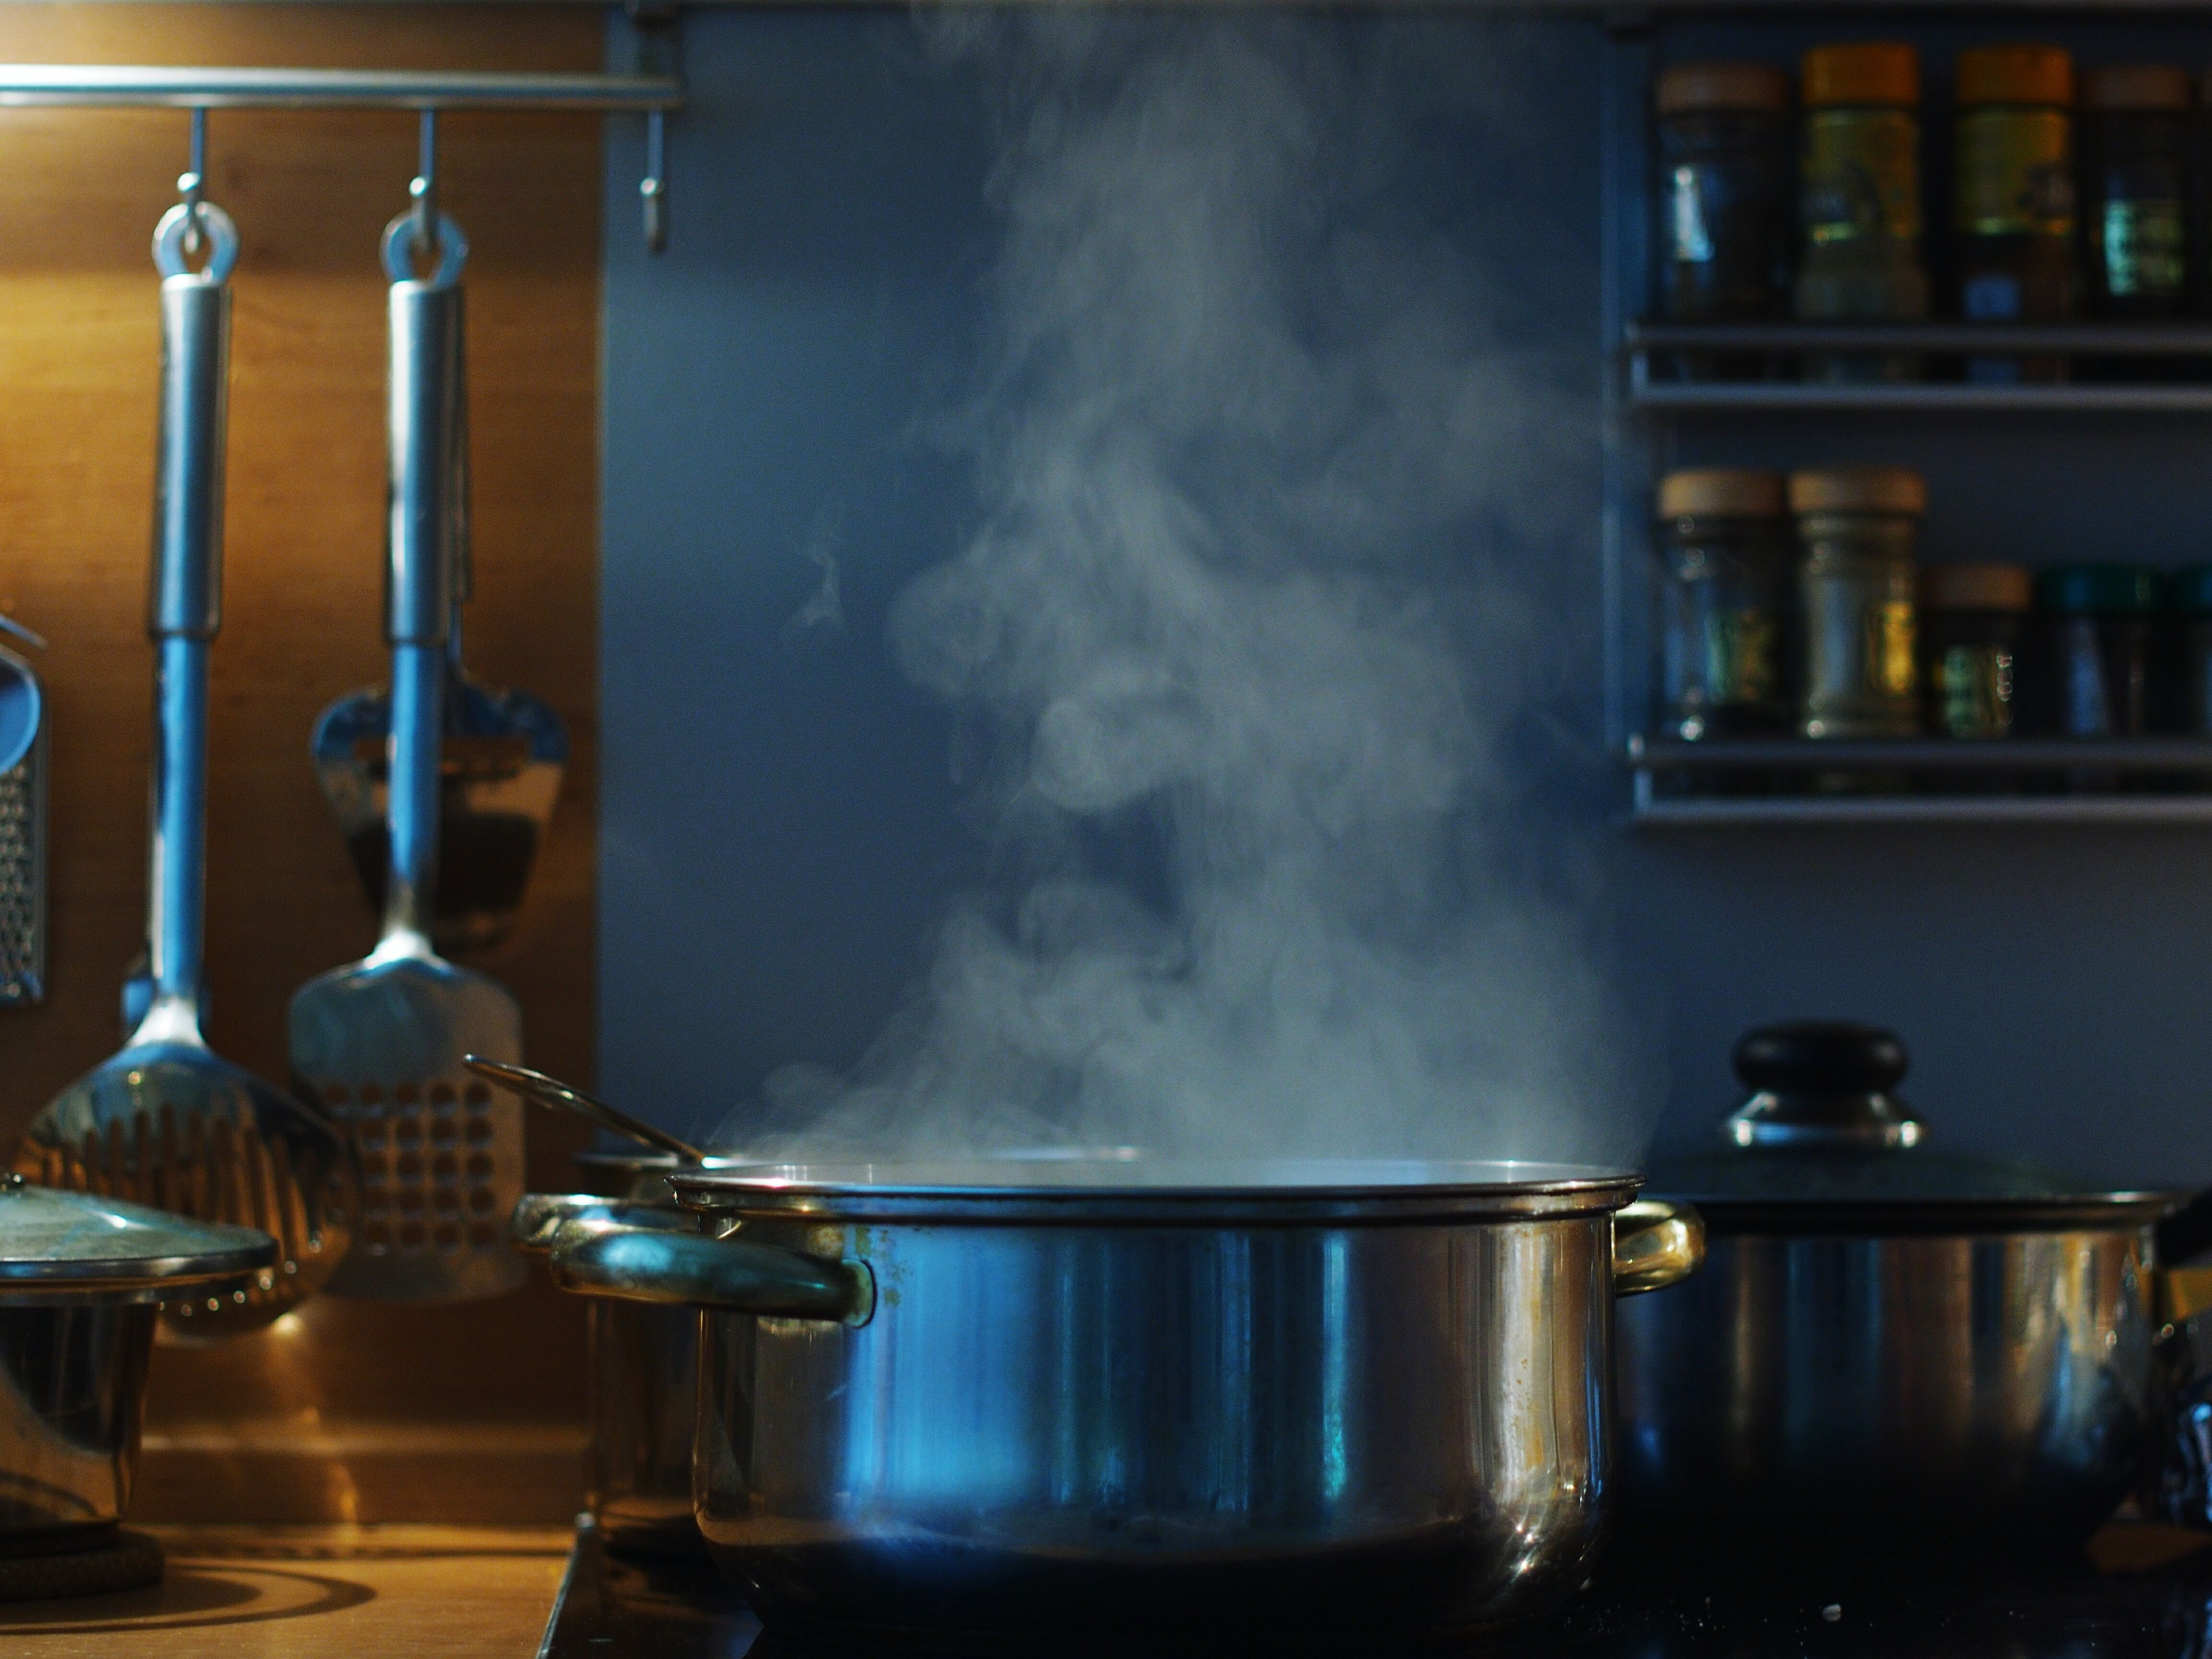 Close-Up Of Steaming Pot On Stove In Kitchen